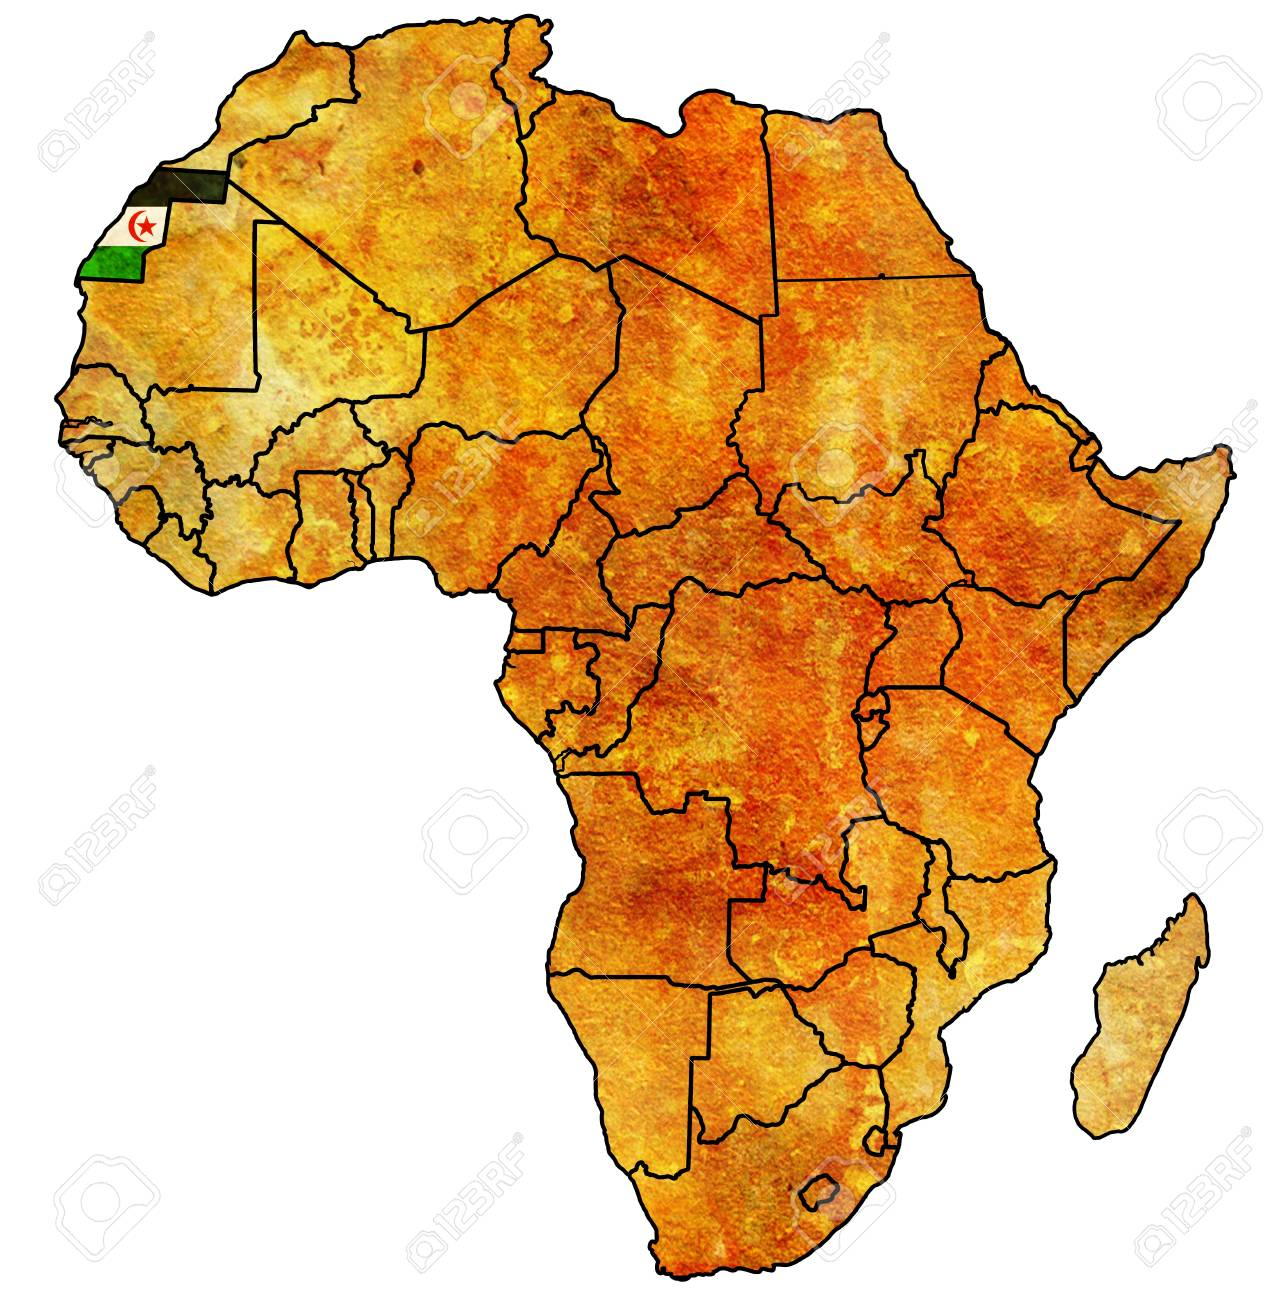 Map Of Africa Sahara.Western Sahara On Actual Vintage Political Map Of Africa With